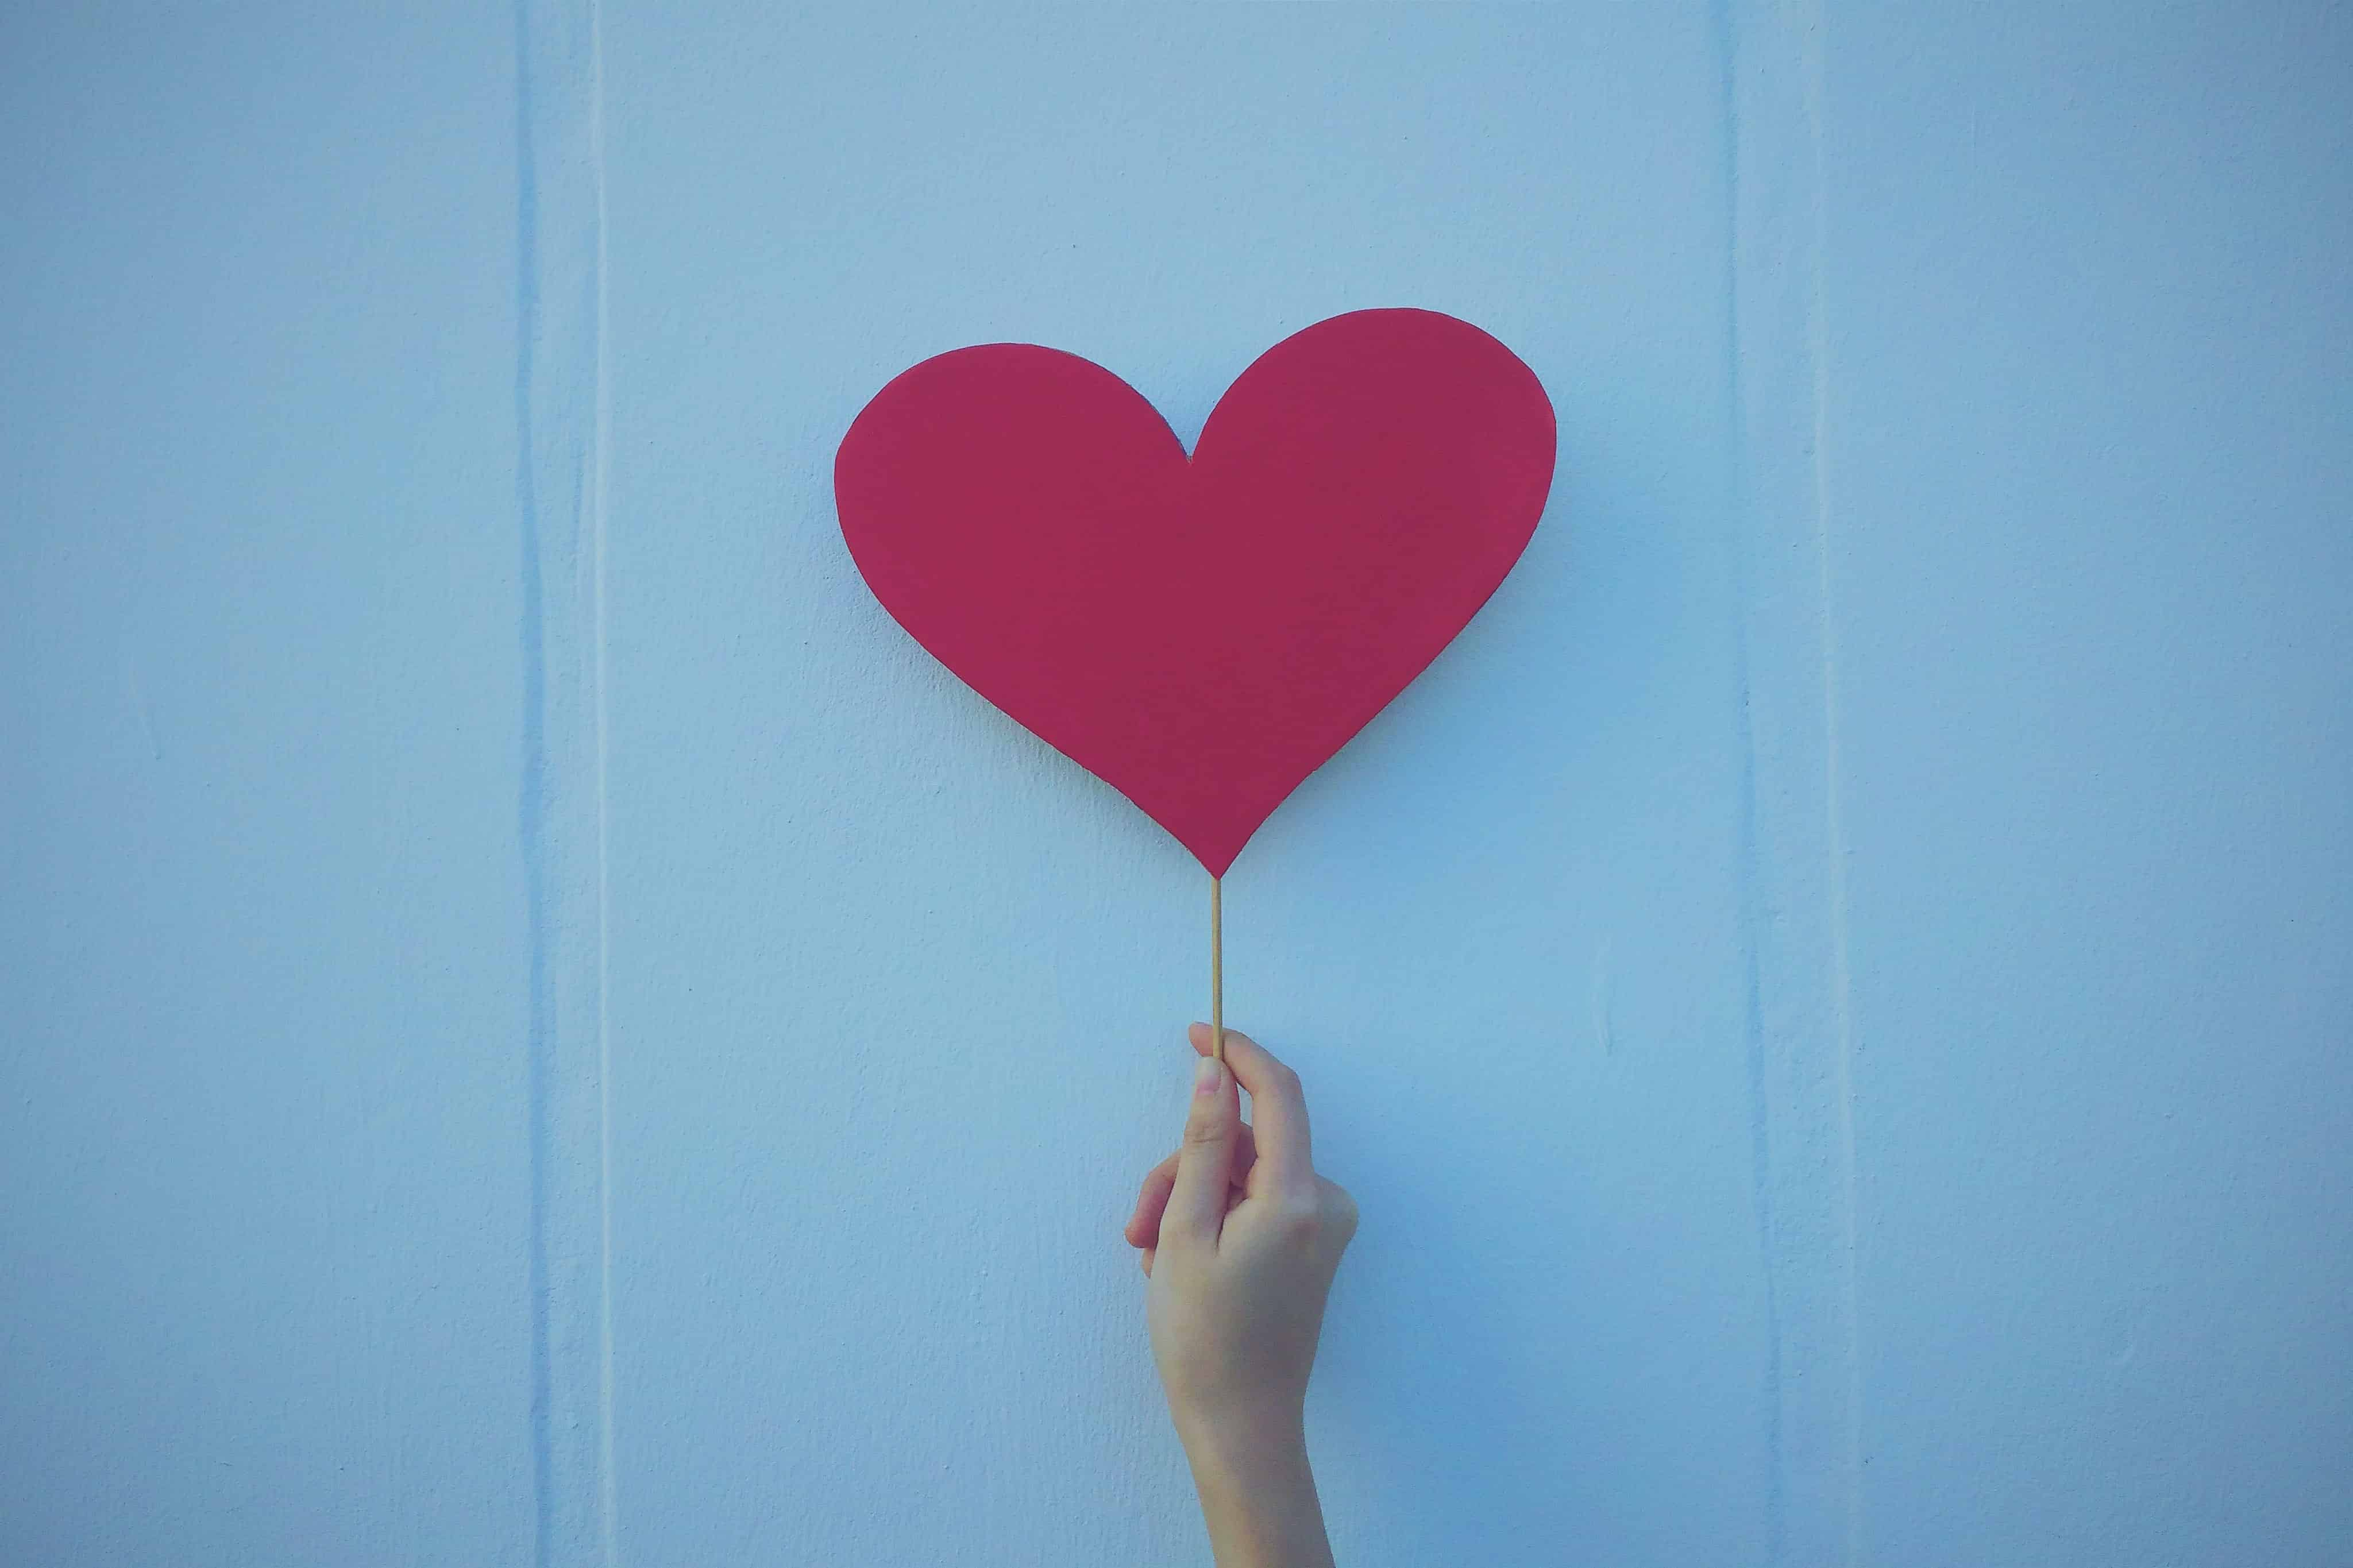 An image of a hand holding a paper heart